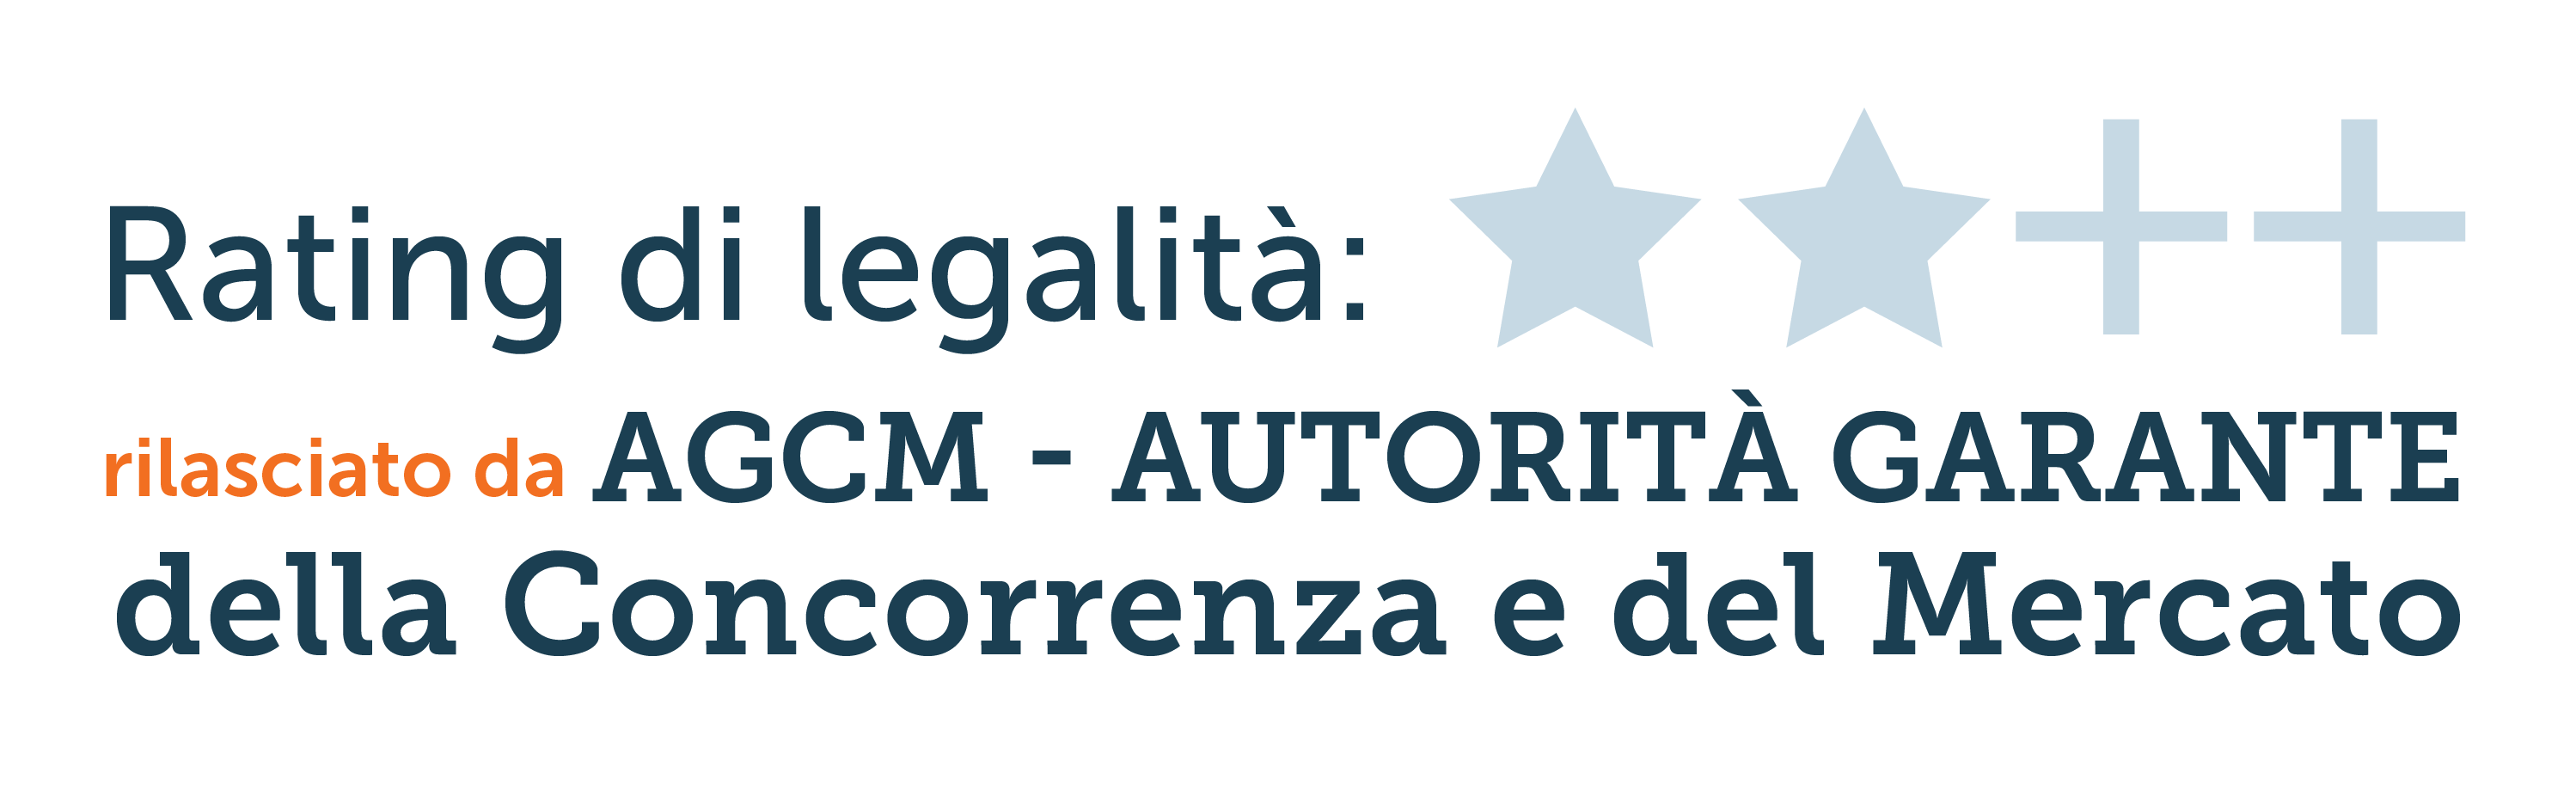 logo_RATING-LEGALITA-01